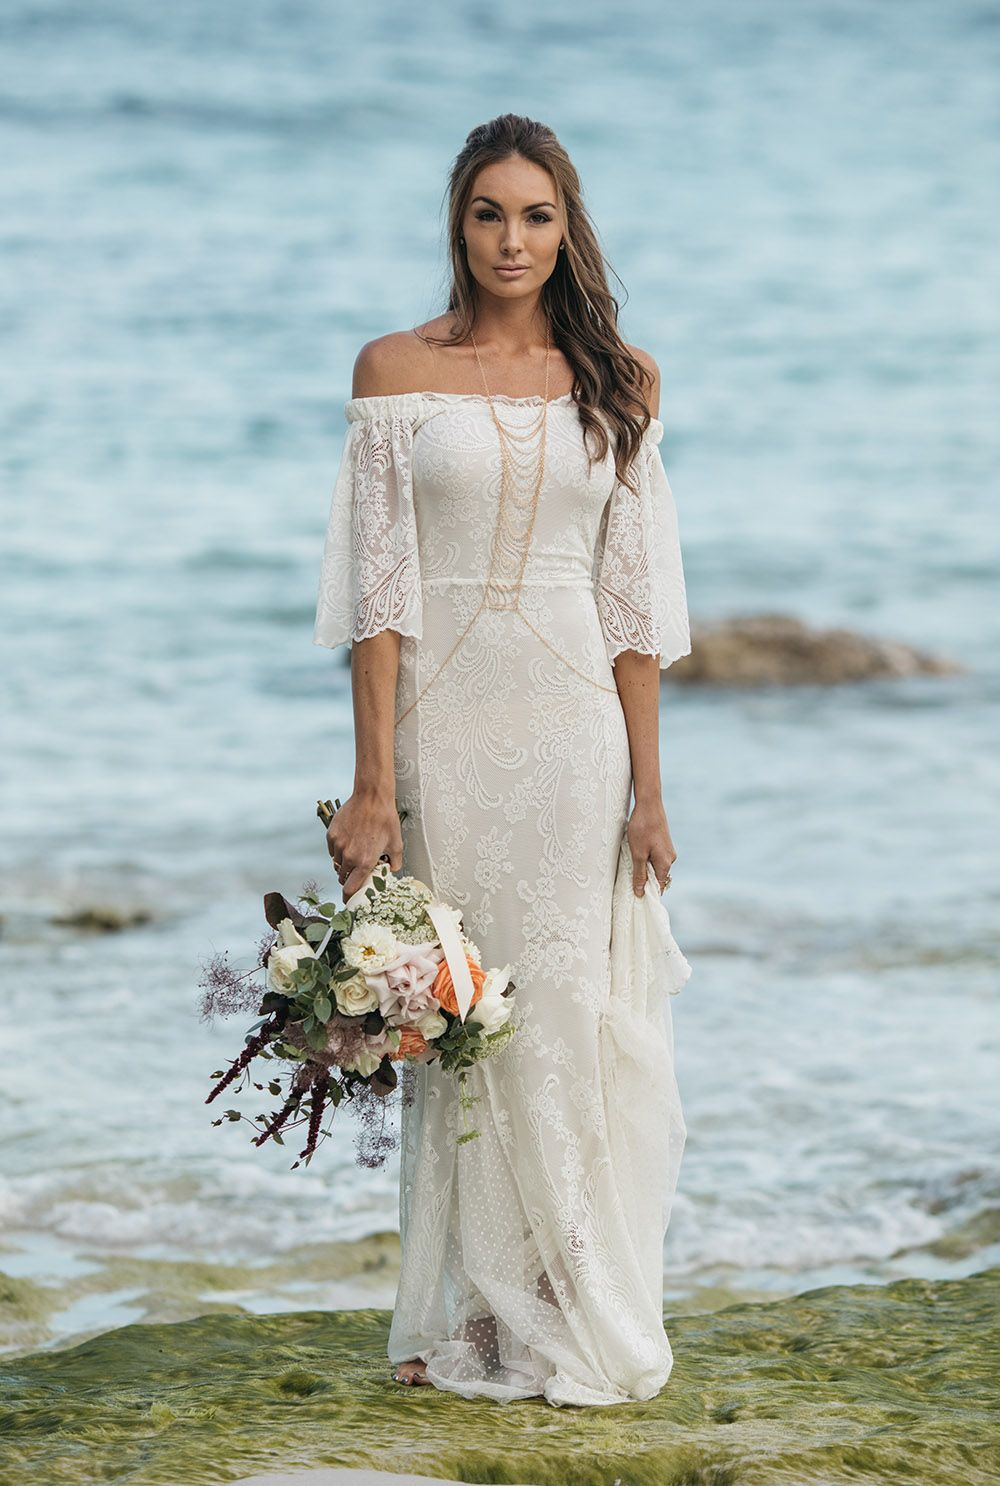 Charming Boho Wedding Outfit Photos - Wedding Ideas - memiocall.com